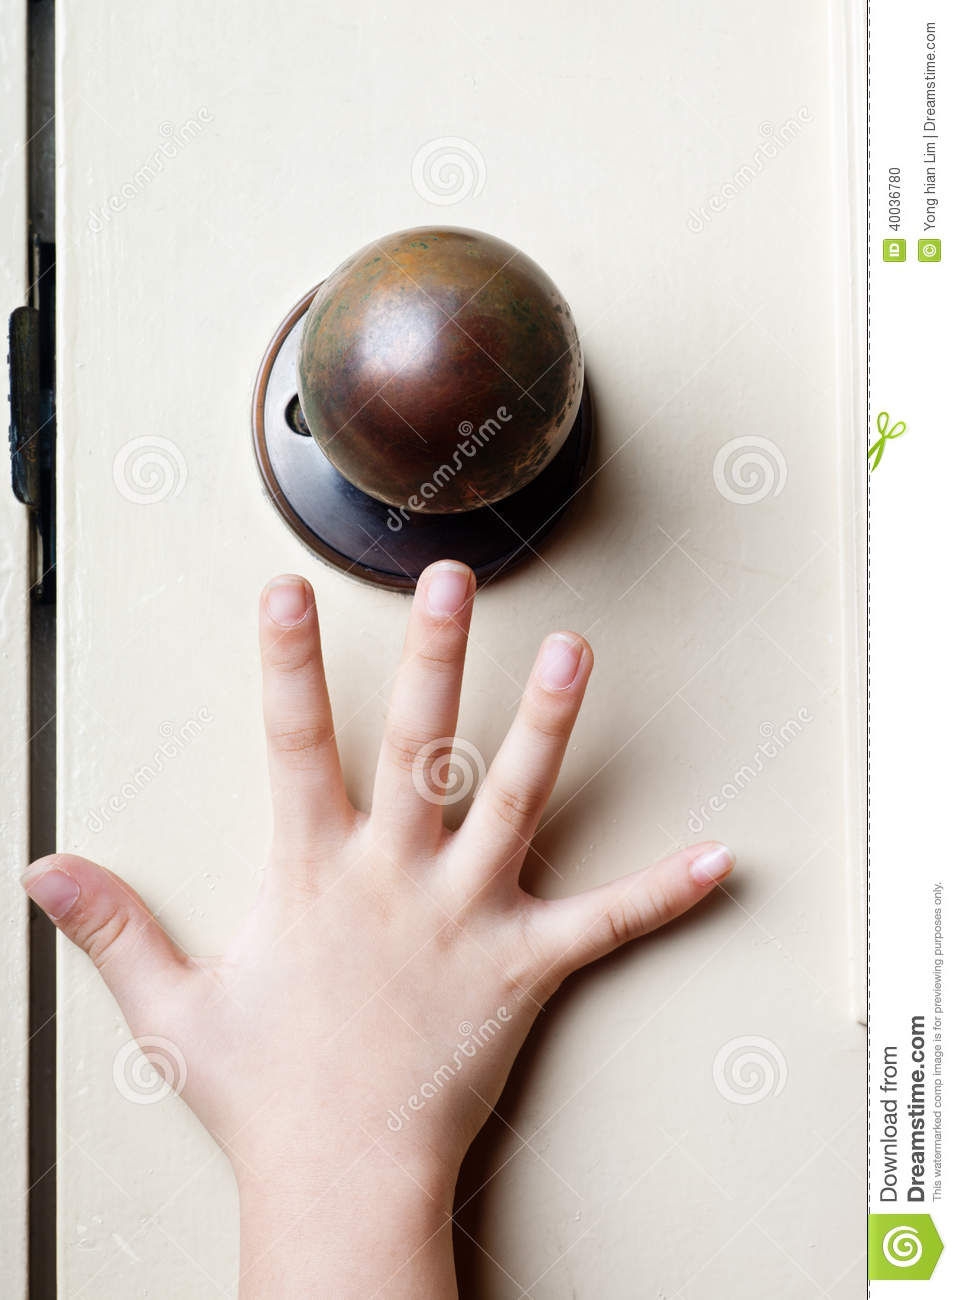 Image Result For Door Knob